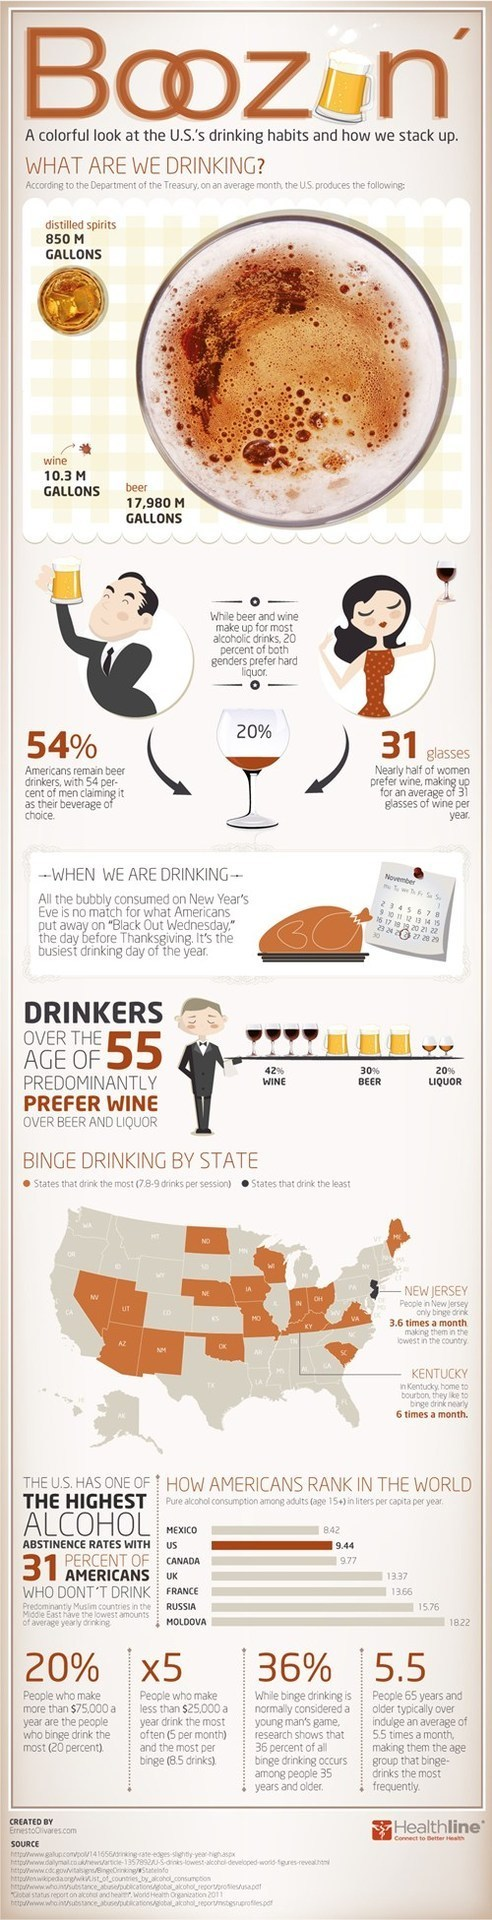 drinking habits what are we drinking utah infographic